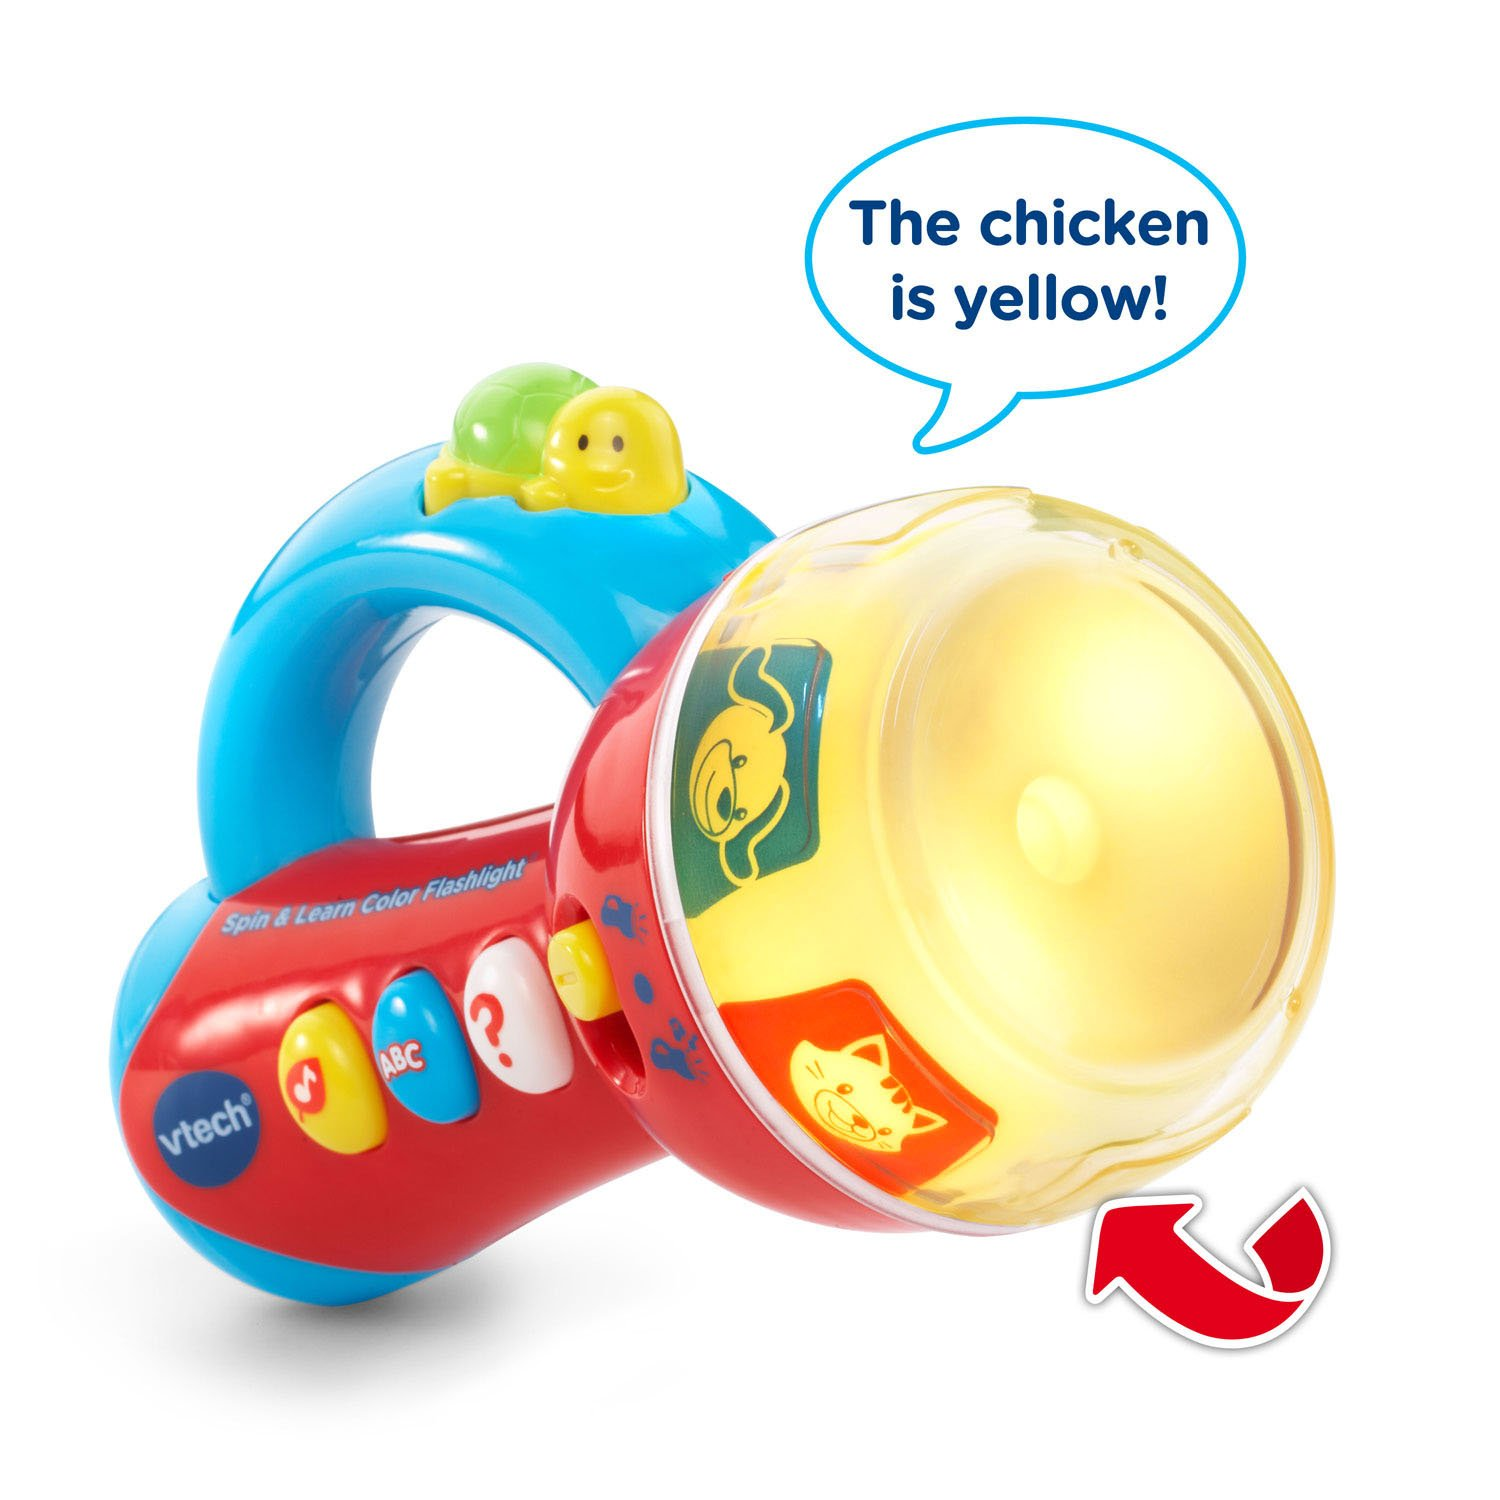 VTech Spin and Learn Color Flashlight - jhfbkjhjk